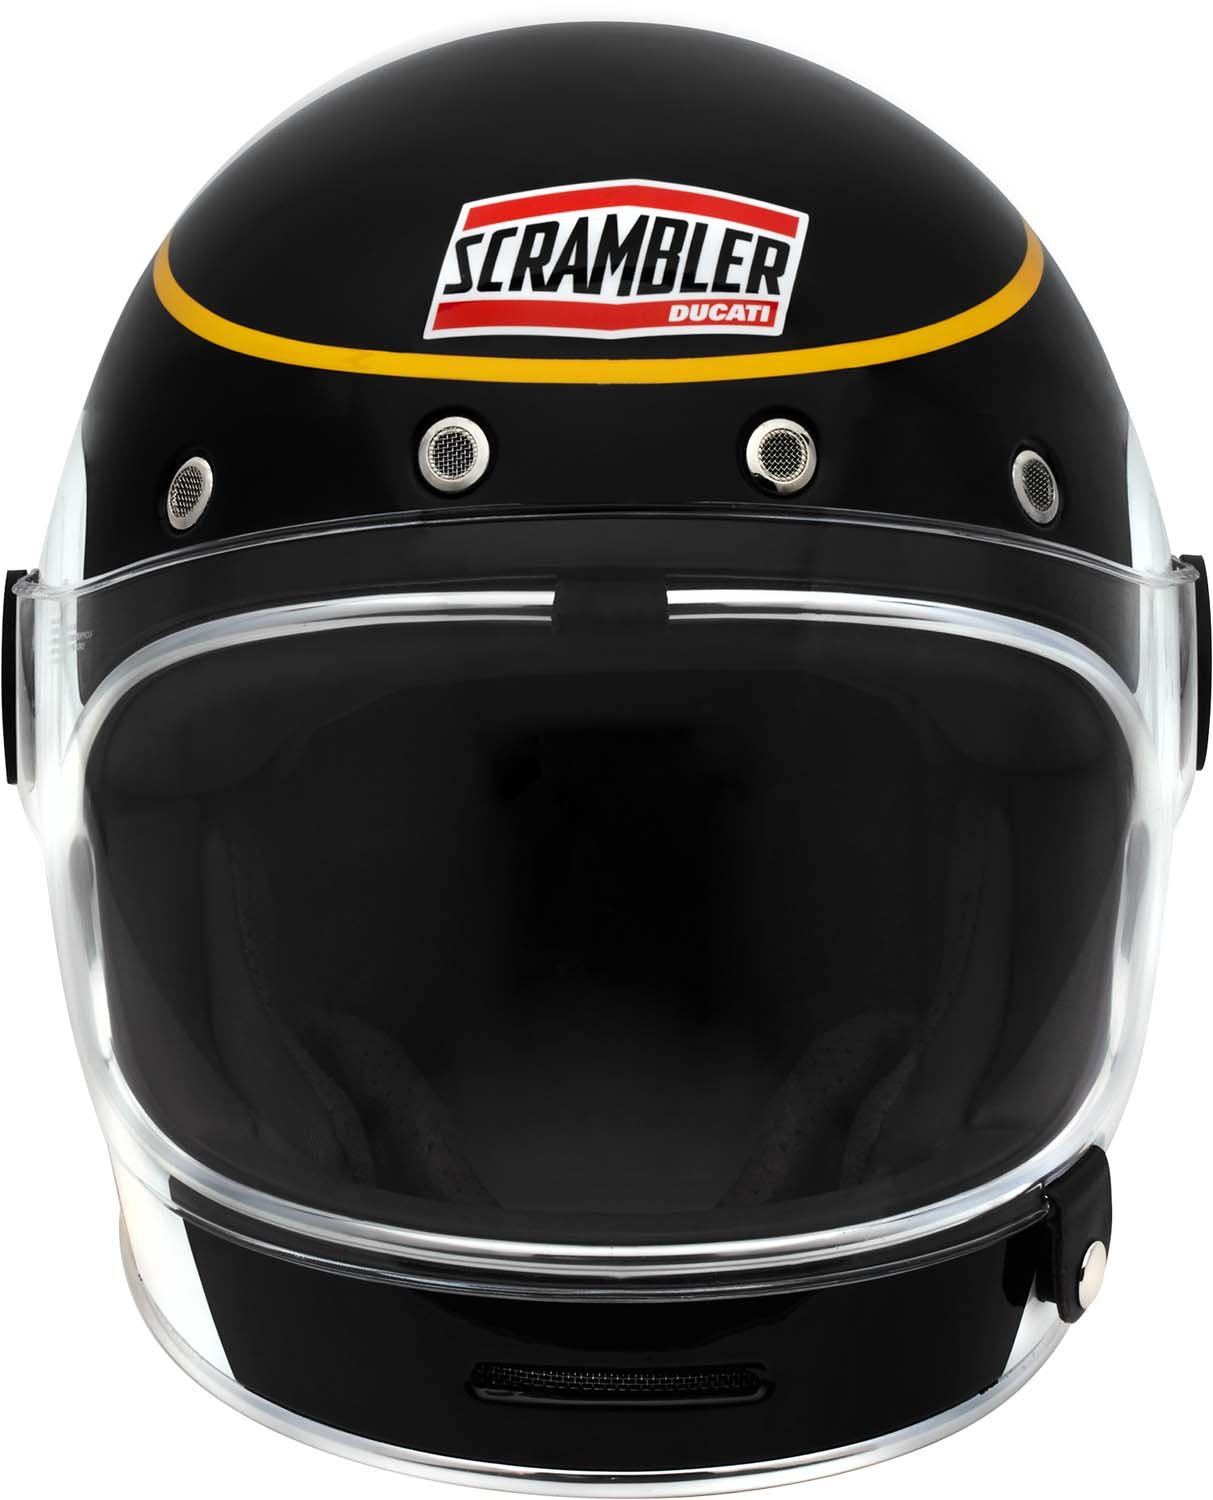 Amazon.com: Ducati Scrambler Black Track Bell Bullitt Helmet (Medium): Automotive